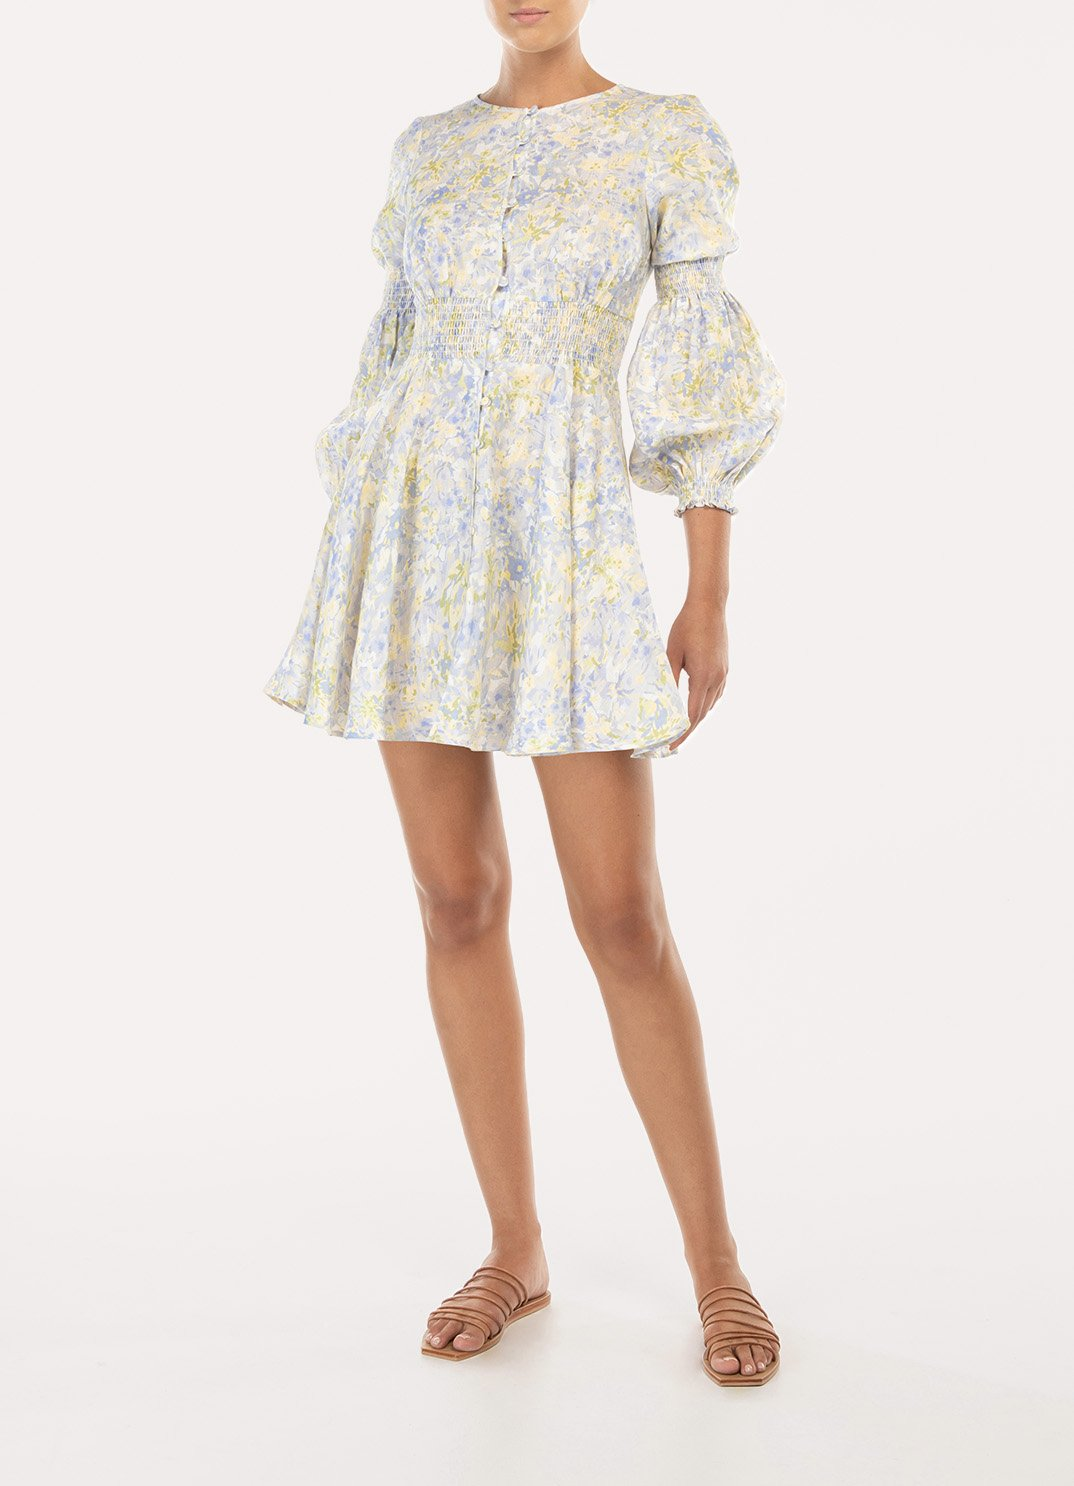 Forget Me Not Poolside Mini Dress